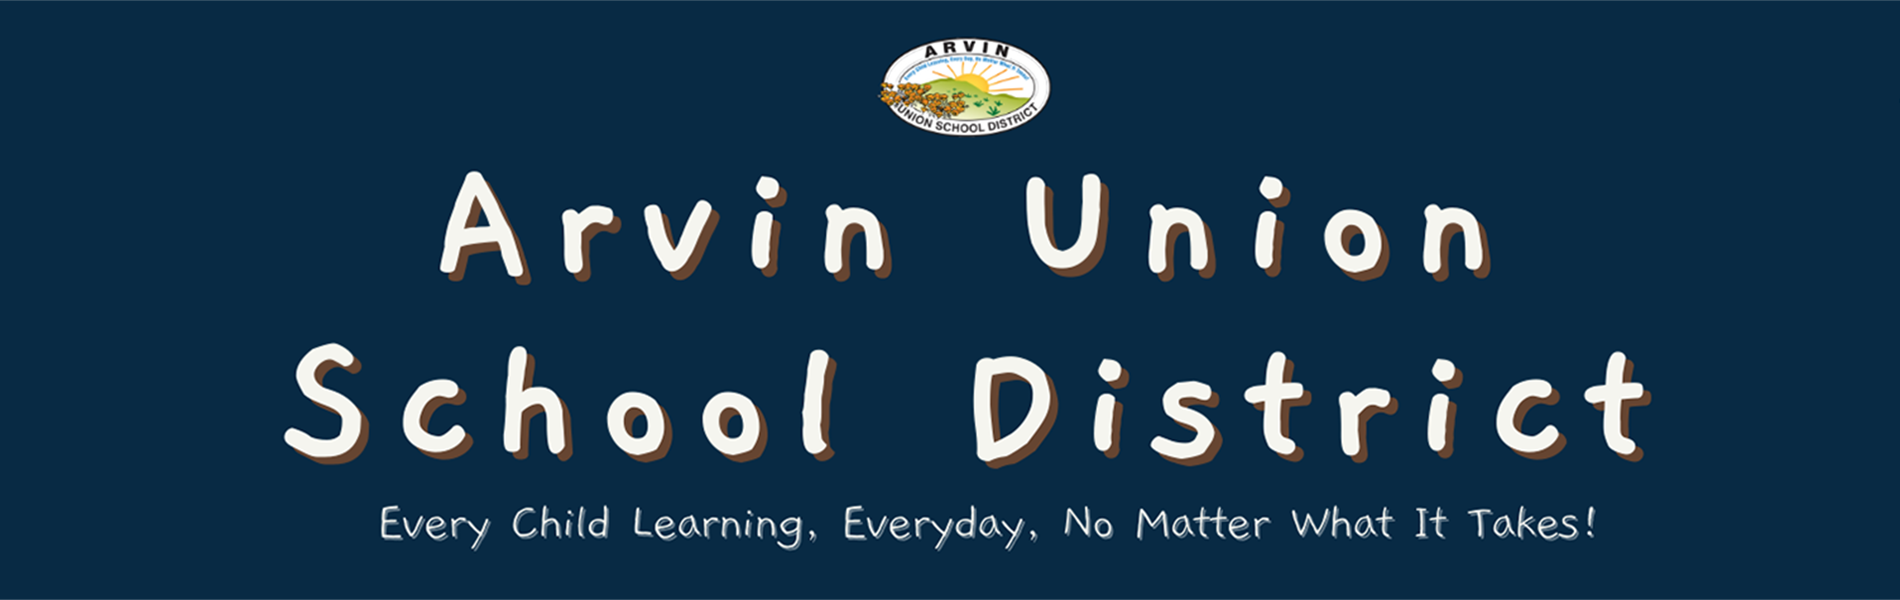 Arvin Union School District Every Child, Learning, Everyday, No matter what it takes